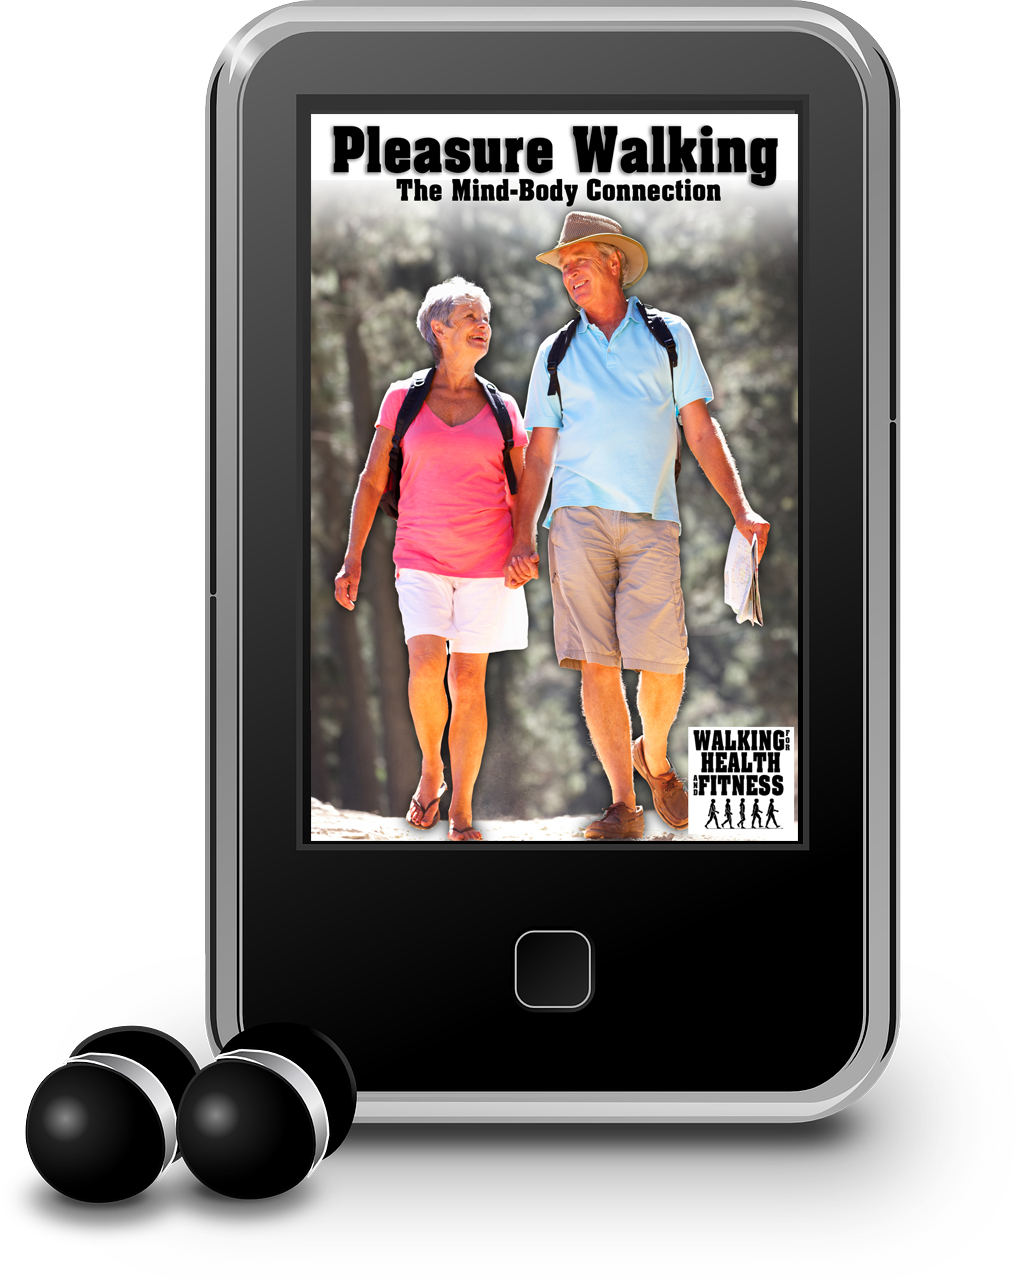 pleasure-walking-exercise-program-mp3-player.jpg